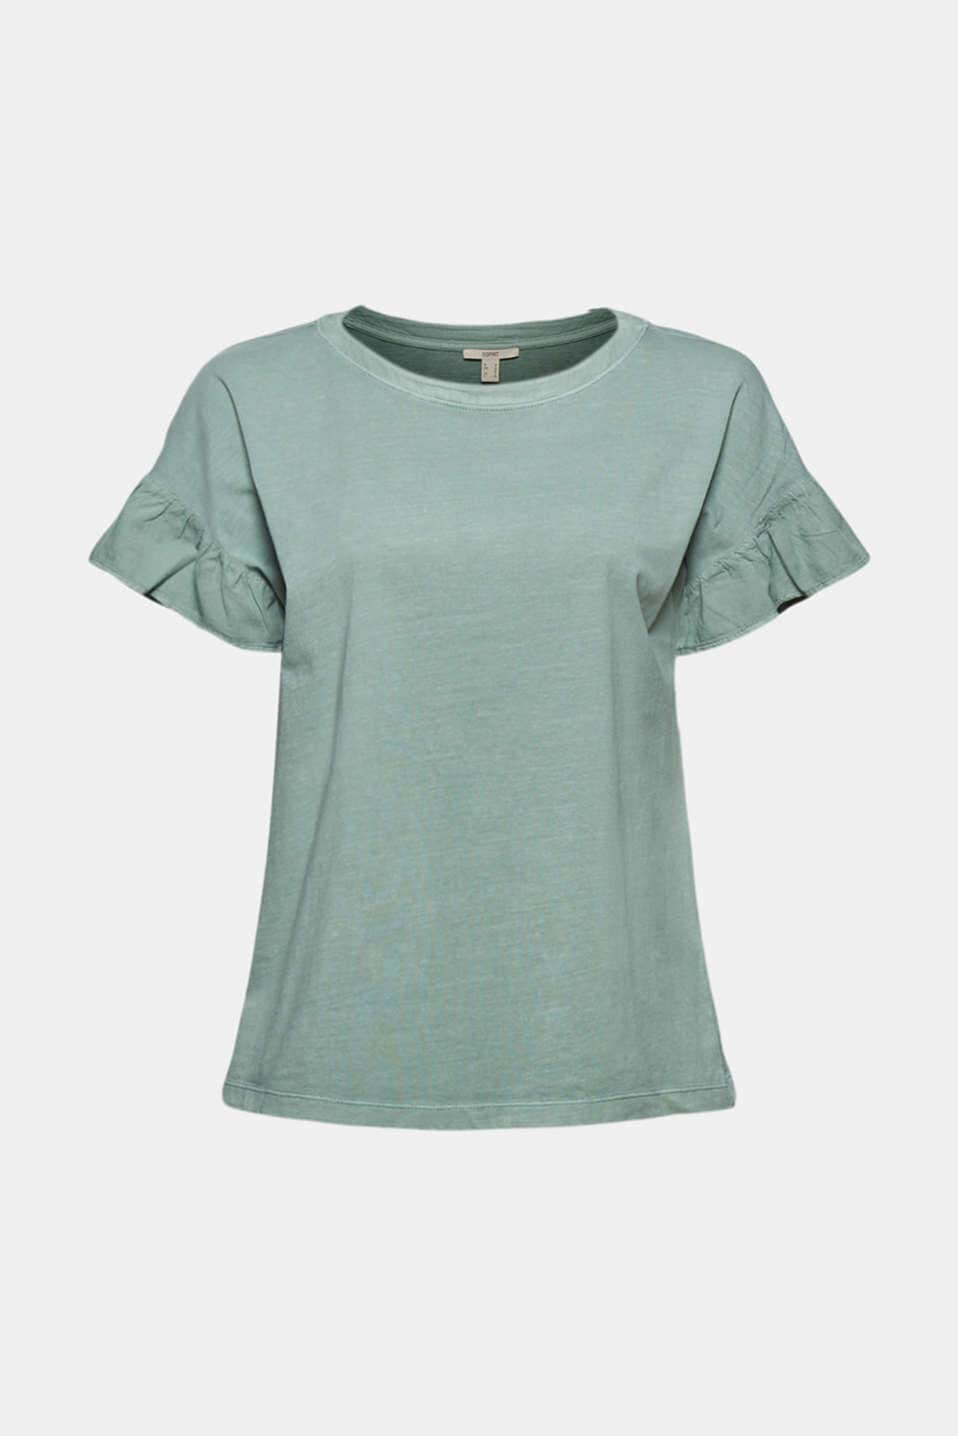 T-shirt Med Volang Ärm - Turquoise